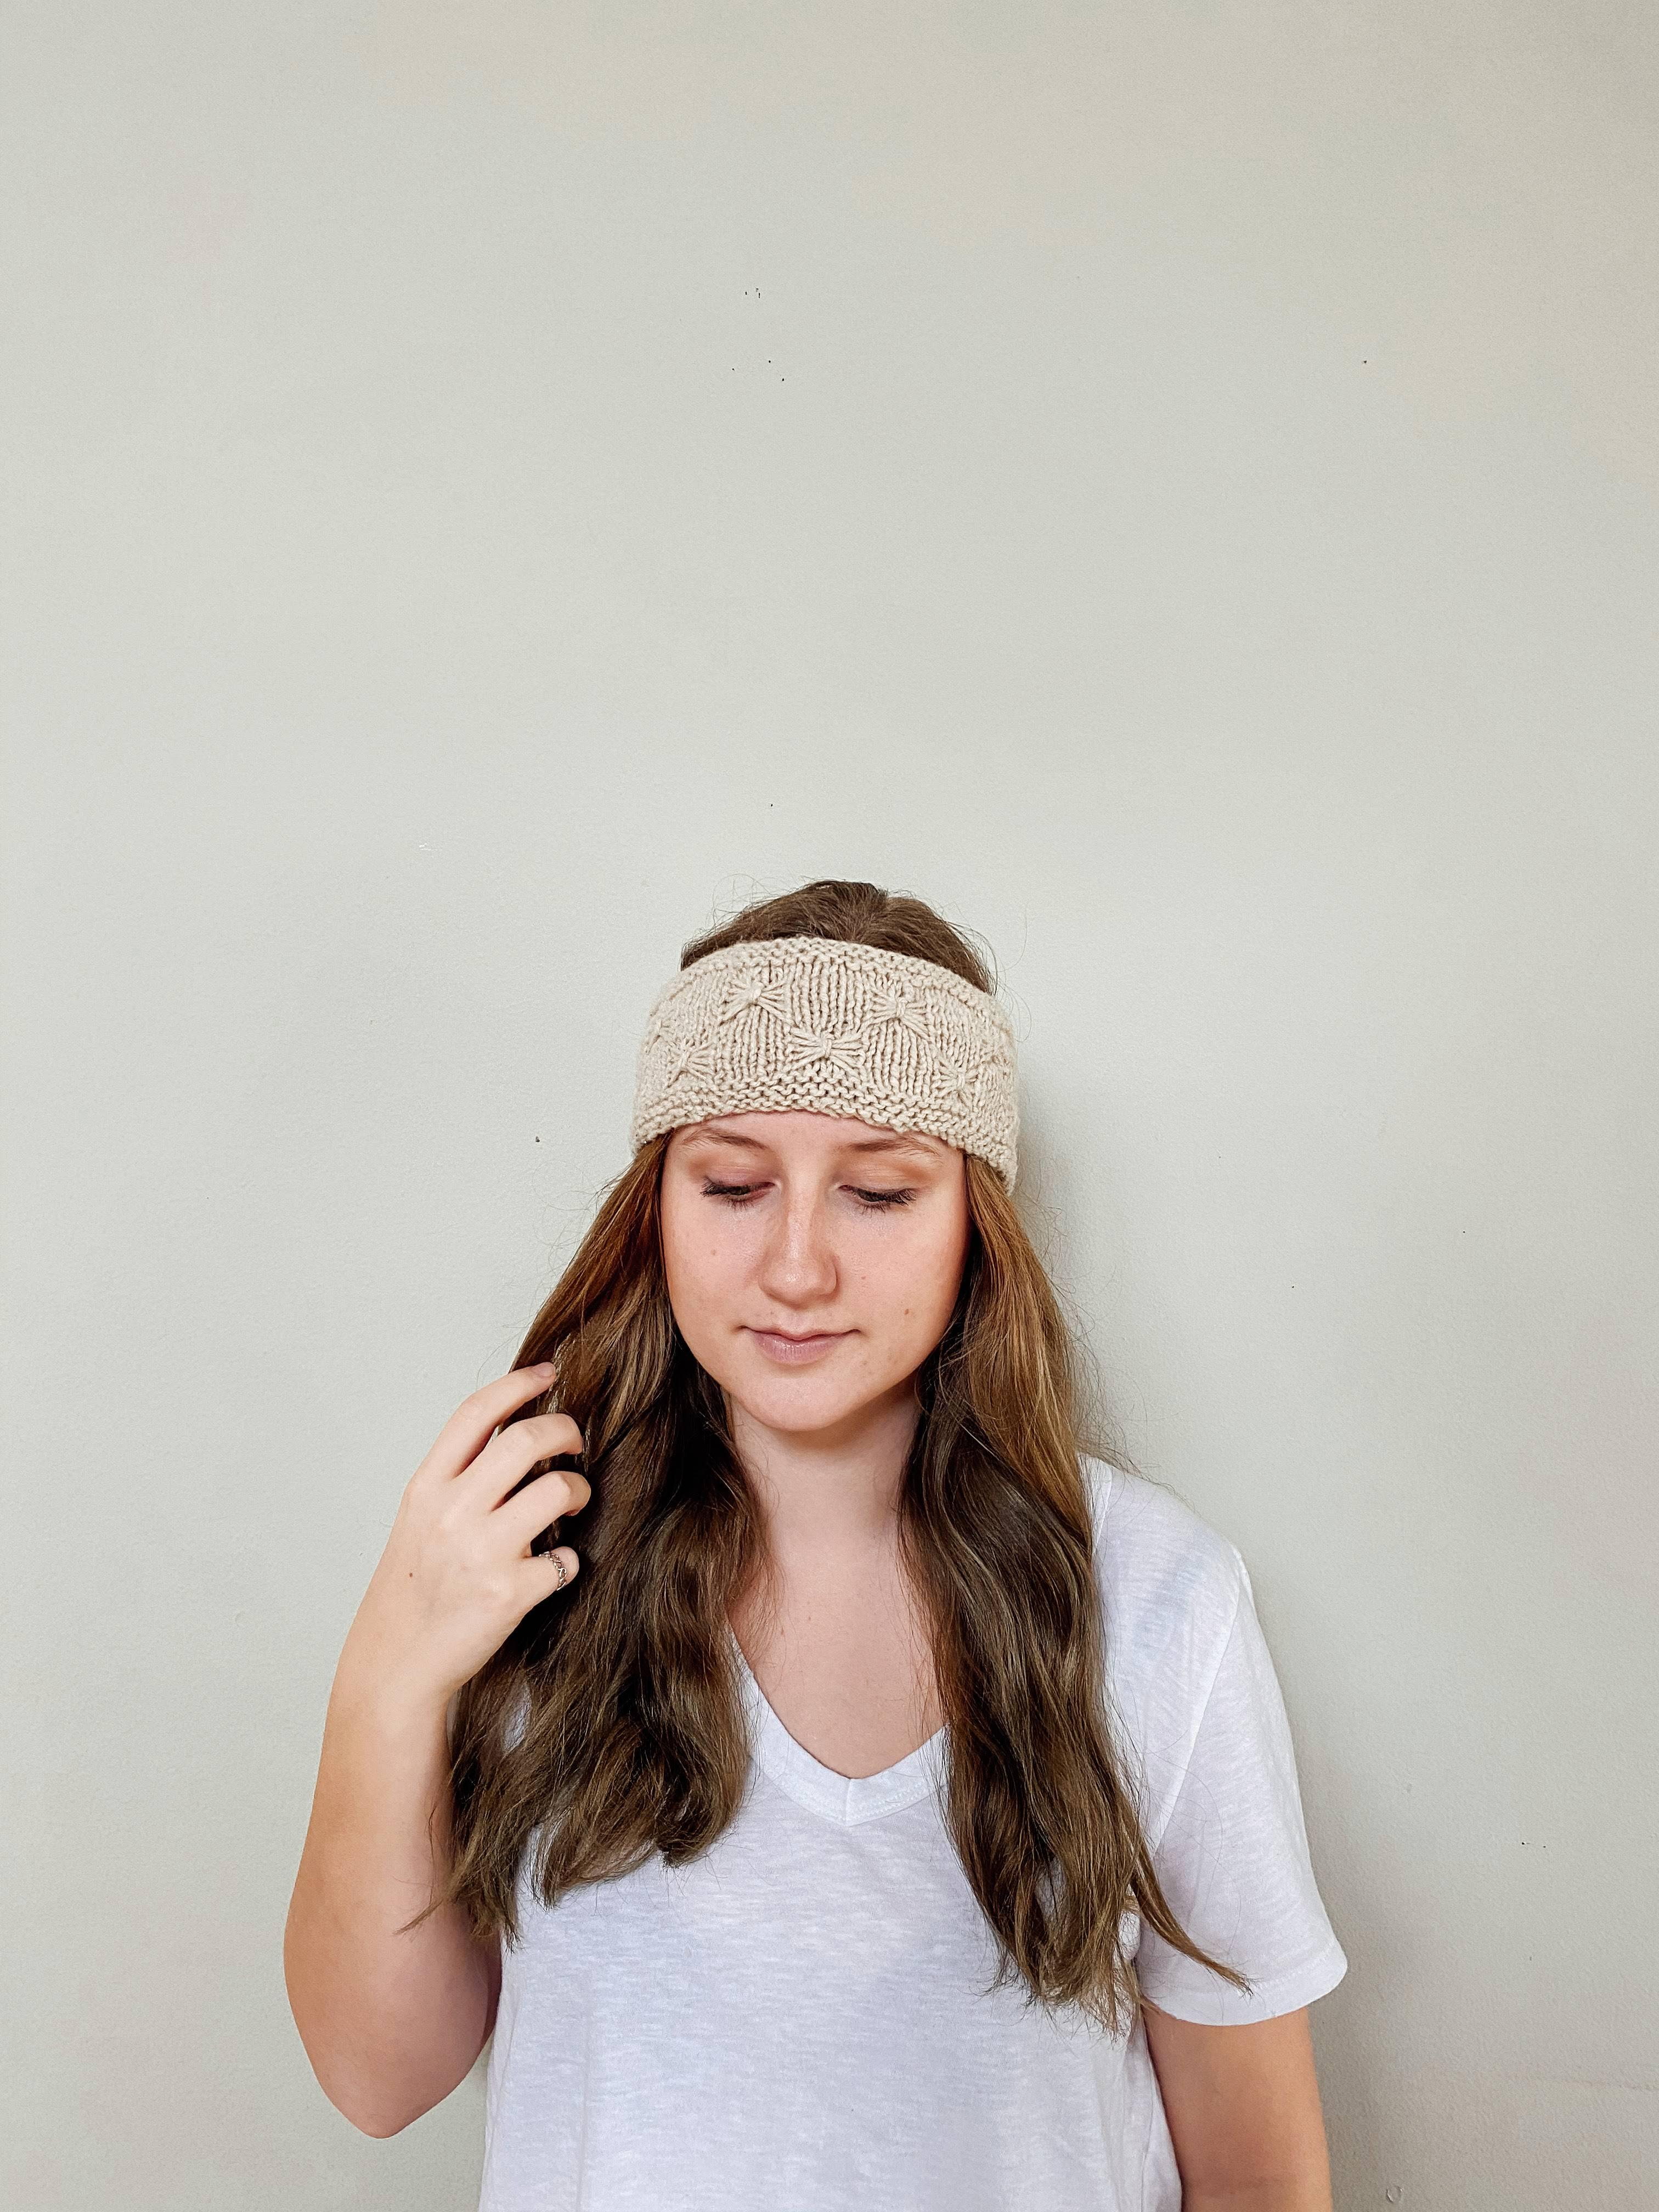 Handspun Butterfly Headband - Handspun Yak Wool Hat -  The Yak Wool Company